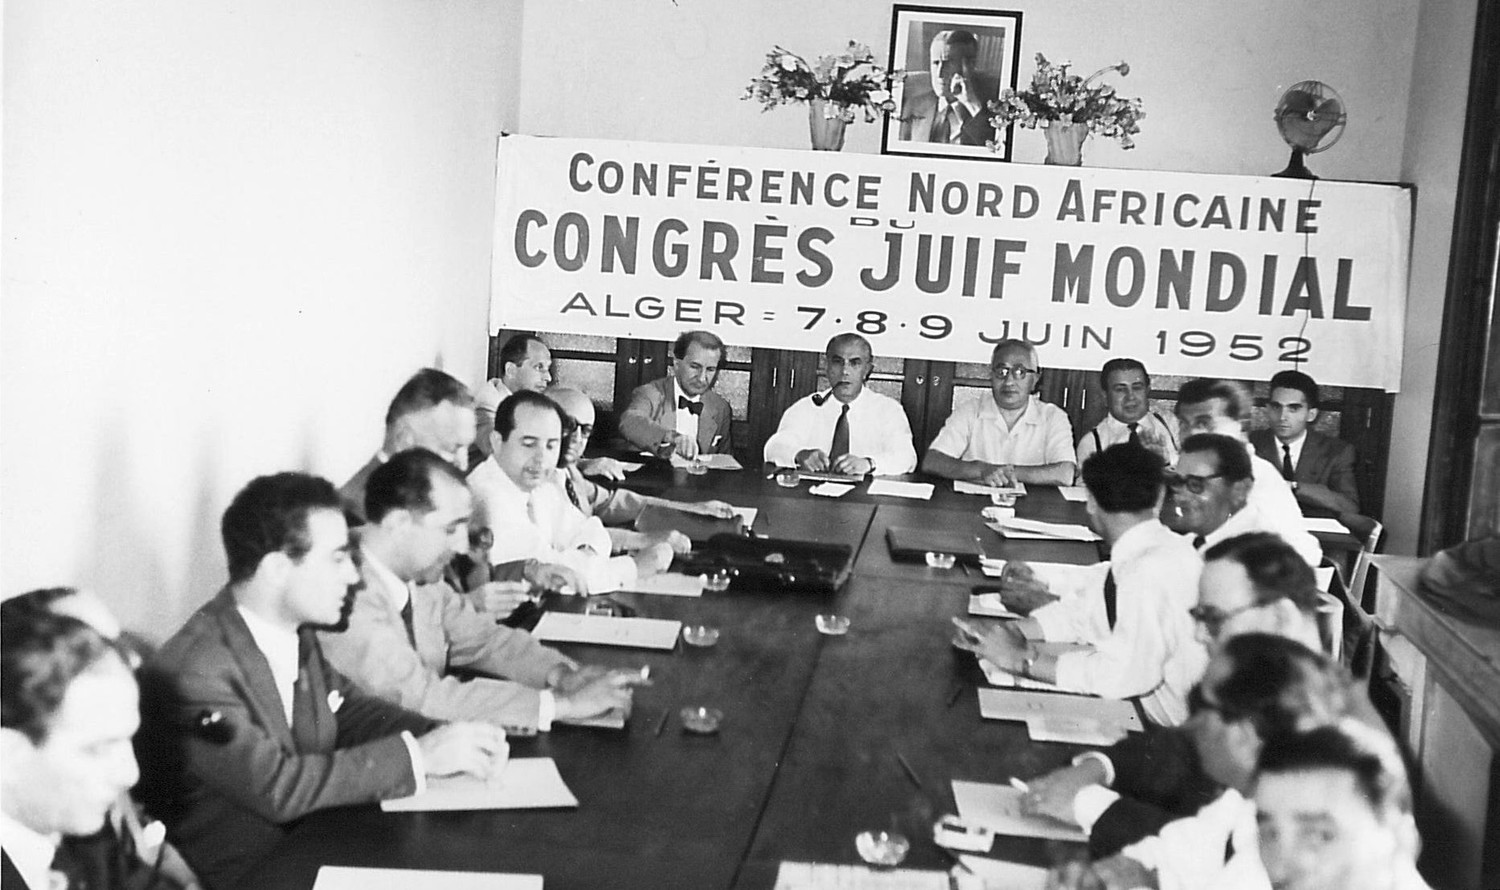 A World Jewish Congress meeting on North African Jewry in 1952.